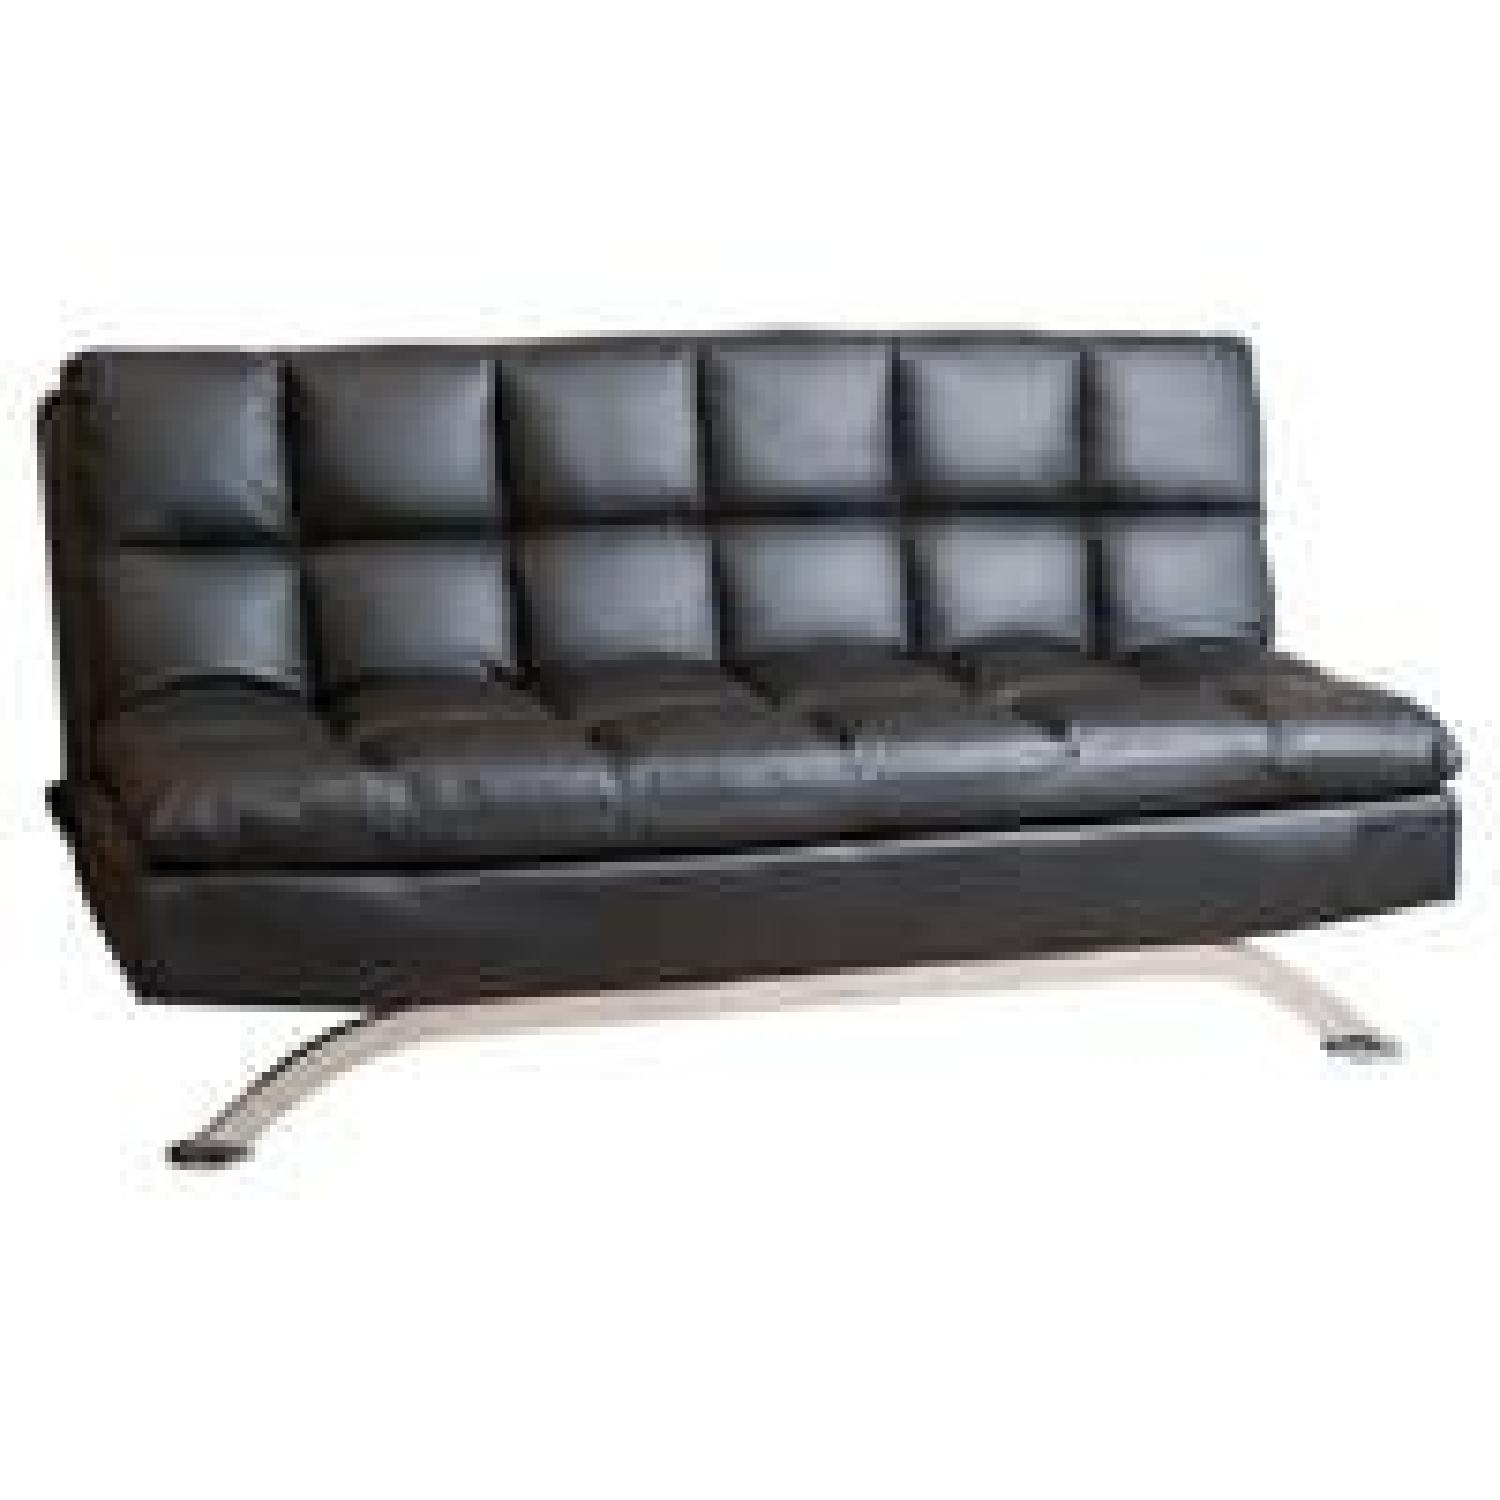 convertible century mid wayfair modern ivy reviews pdx futon furniture vina bronx